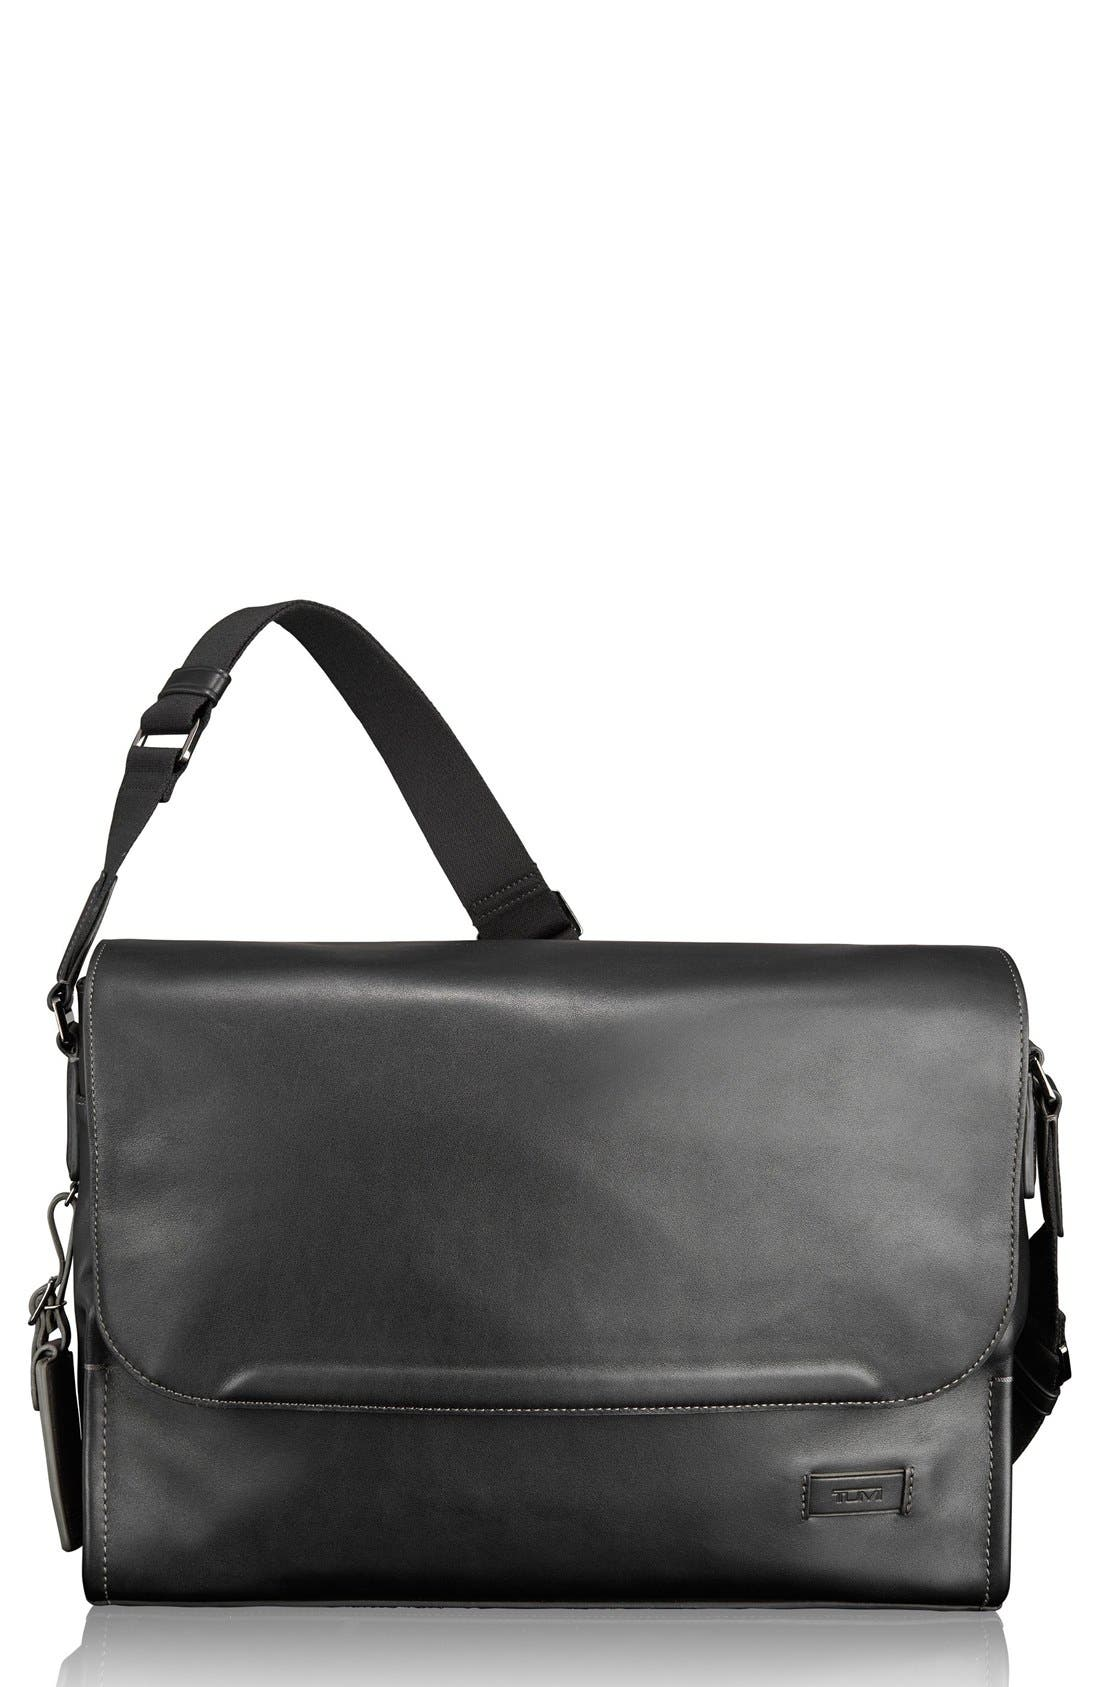 TUMI Harrison - Mathews Messenger Bag